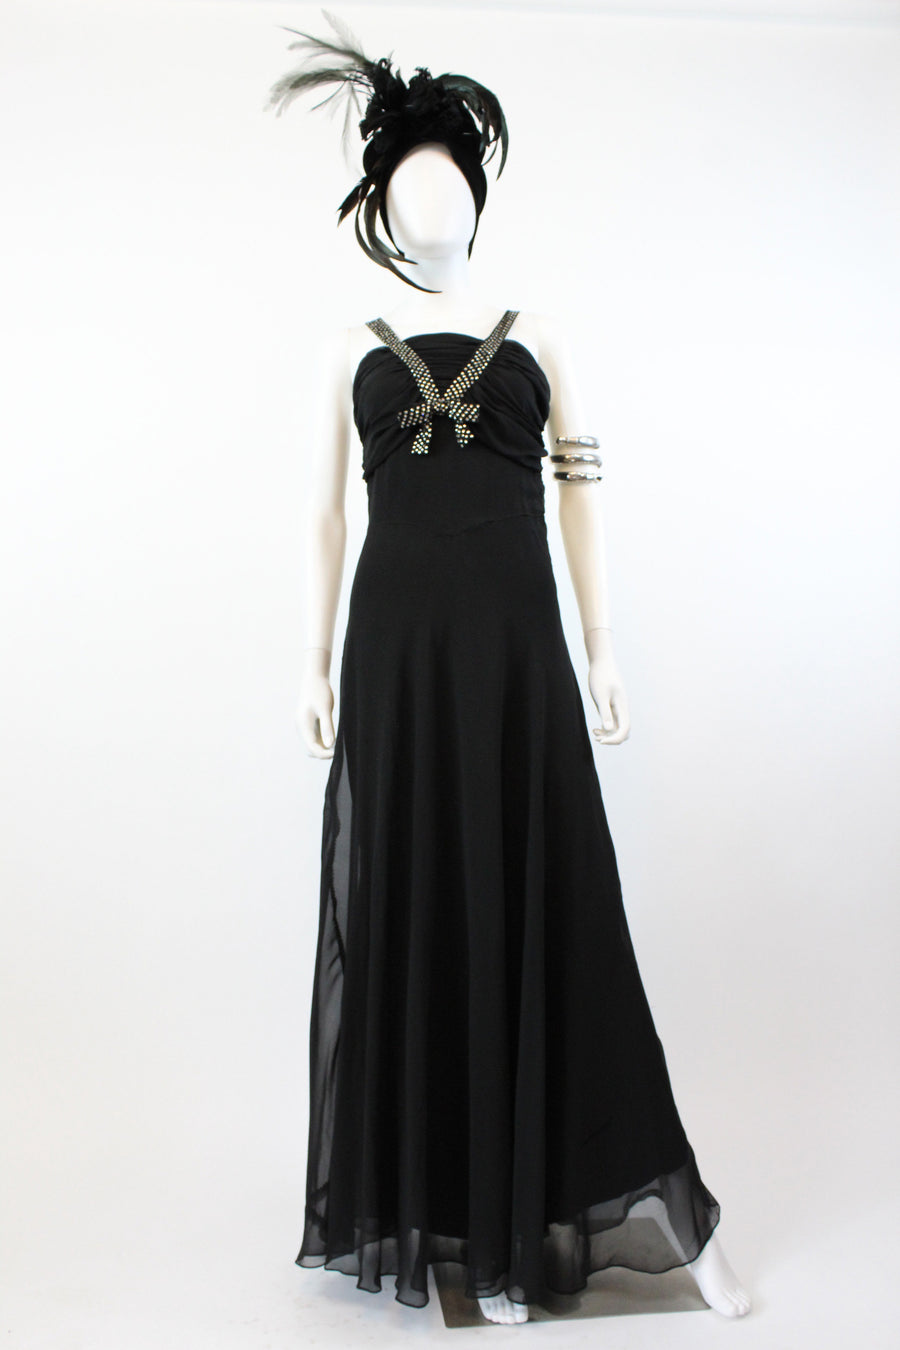 1930s silk rhinestone straps dress small | vintage gown | new in